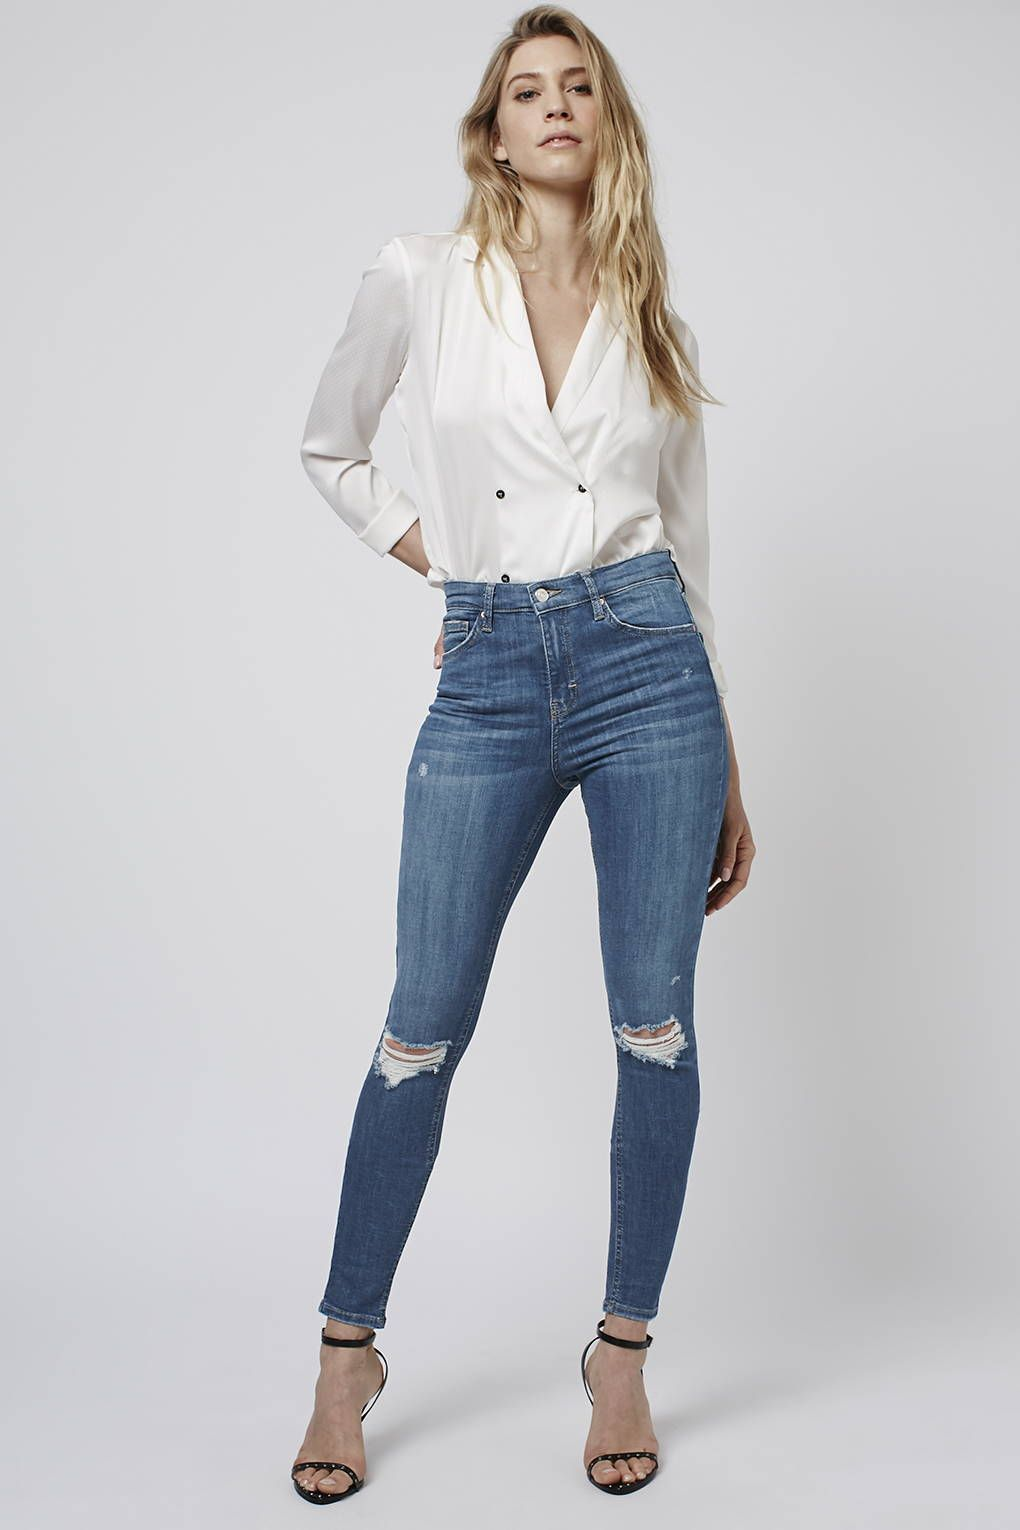 MOTO Authentic Rip Jamie Jeans - Jeans - Clothing - Topshop